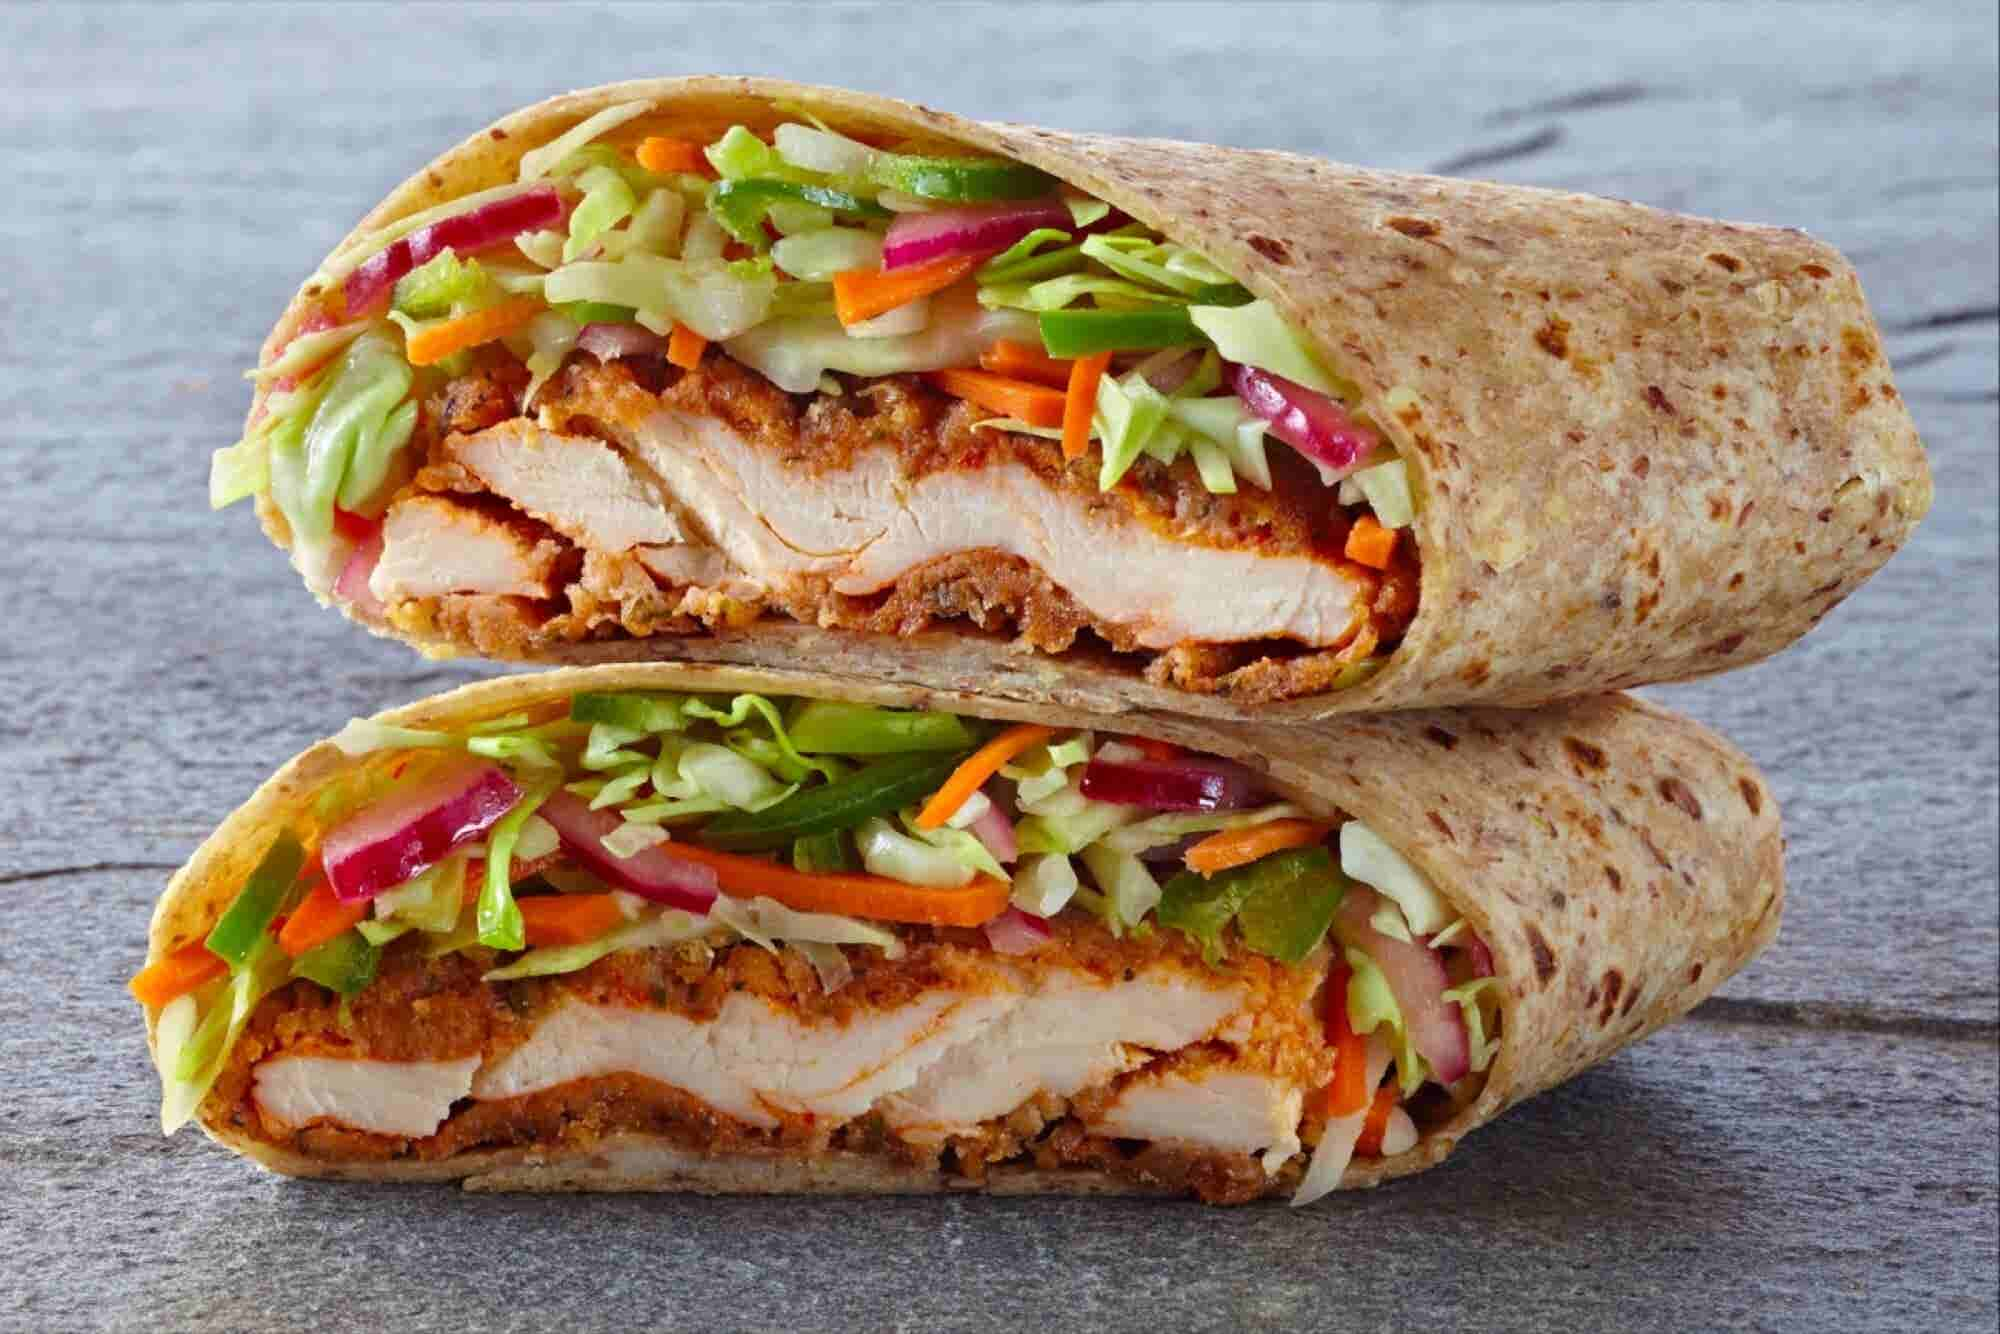 Former Costco Executive Launches First Ever Certified Organic Fast-Food Chain